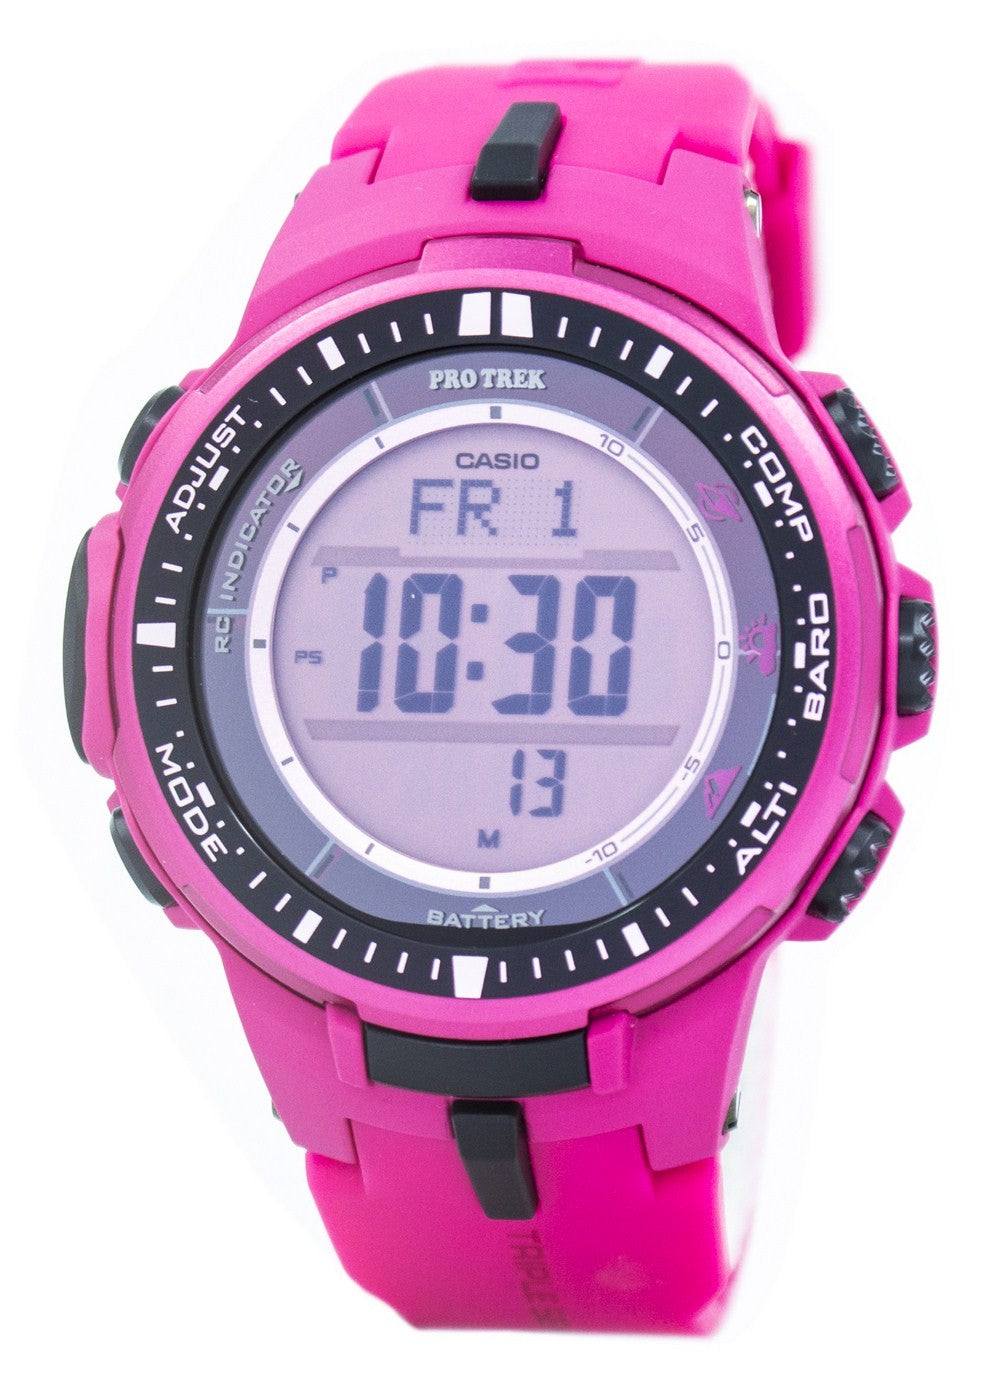 Casio Protrek Atomic Tough Solar Triple Sensor Pink PRW-3000-4B PRW3000-4B Watch